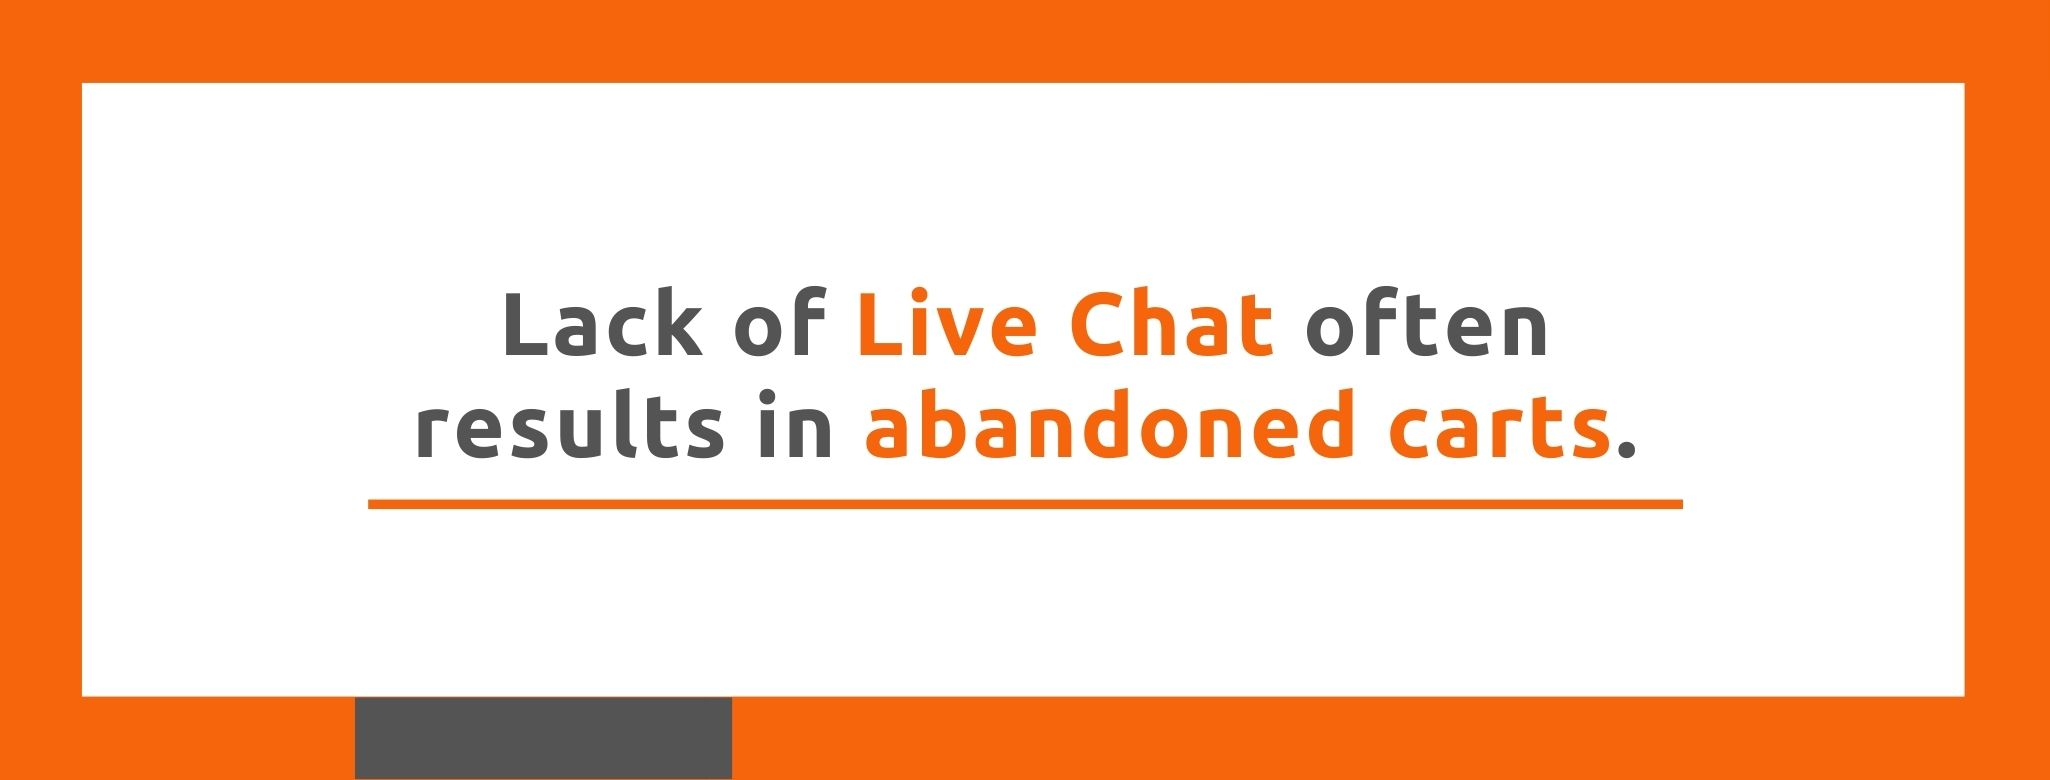 Lack of Live Chat often results in abandoned carts. - Replyco